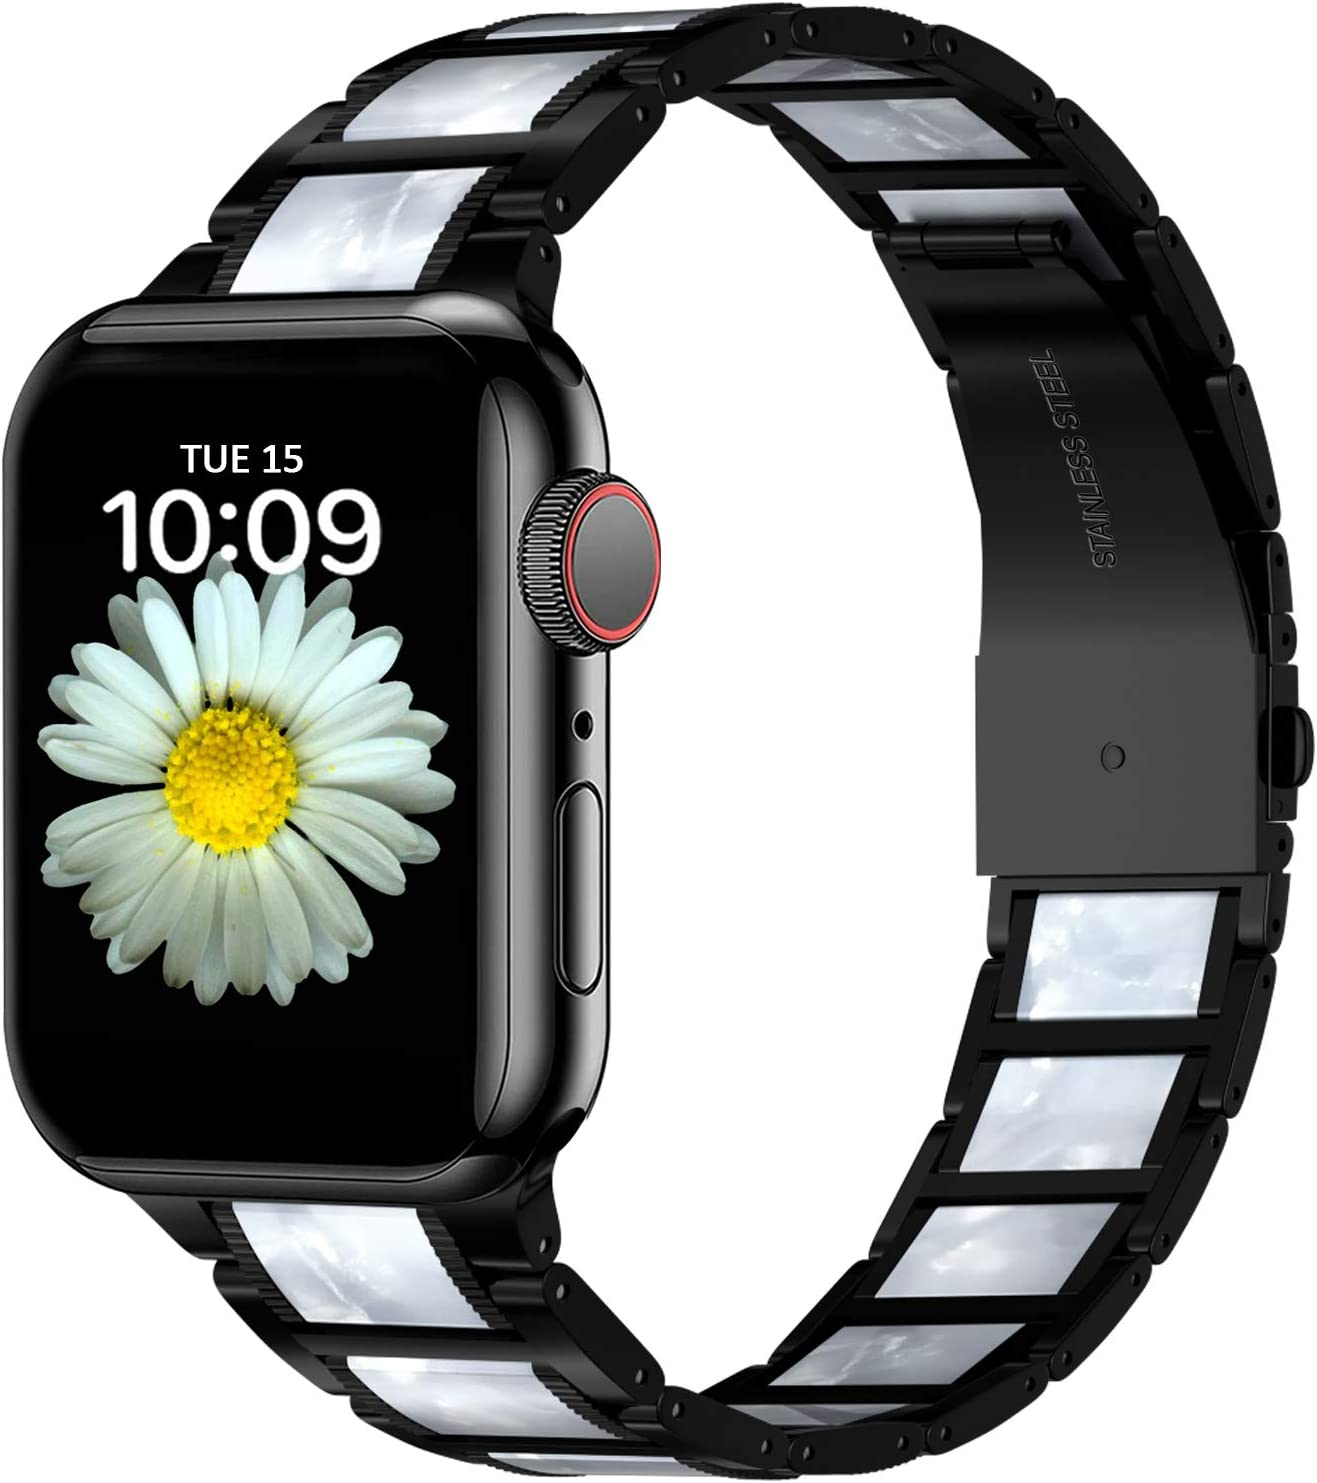 Aowemea Compatible with Apple Watch Band 38mm 42mm Upgraded Stainless Steel Resin Retro Floral Women Strap Bracelet Wristband for iWatch SE Series 6/5/4/3/2/1 (Black+Marble White, 38/40mm)